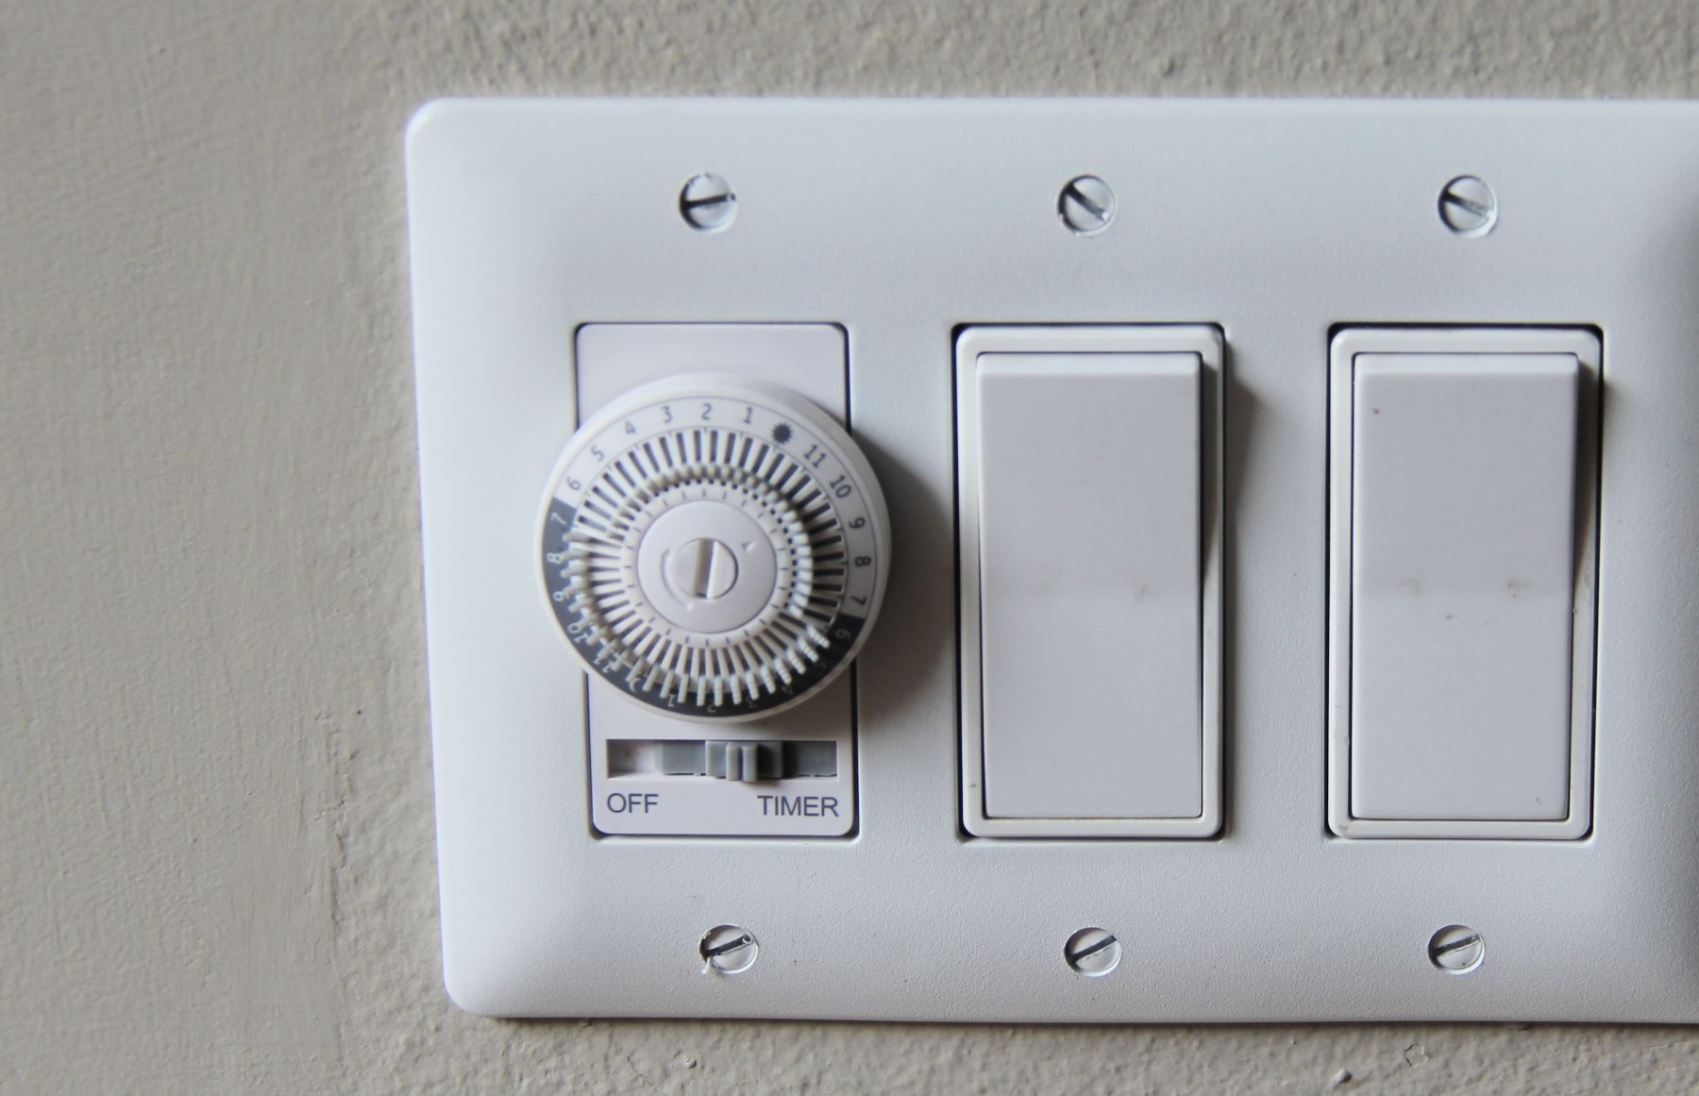 Super How To Choose And Install A Programmable Wall Switch Timer The Wiring Cloud Ostrrenstrafr09Org